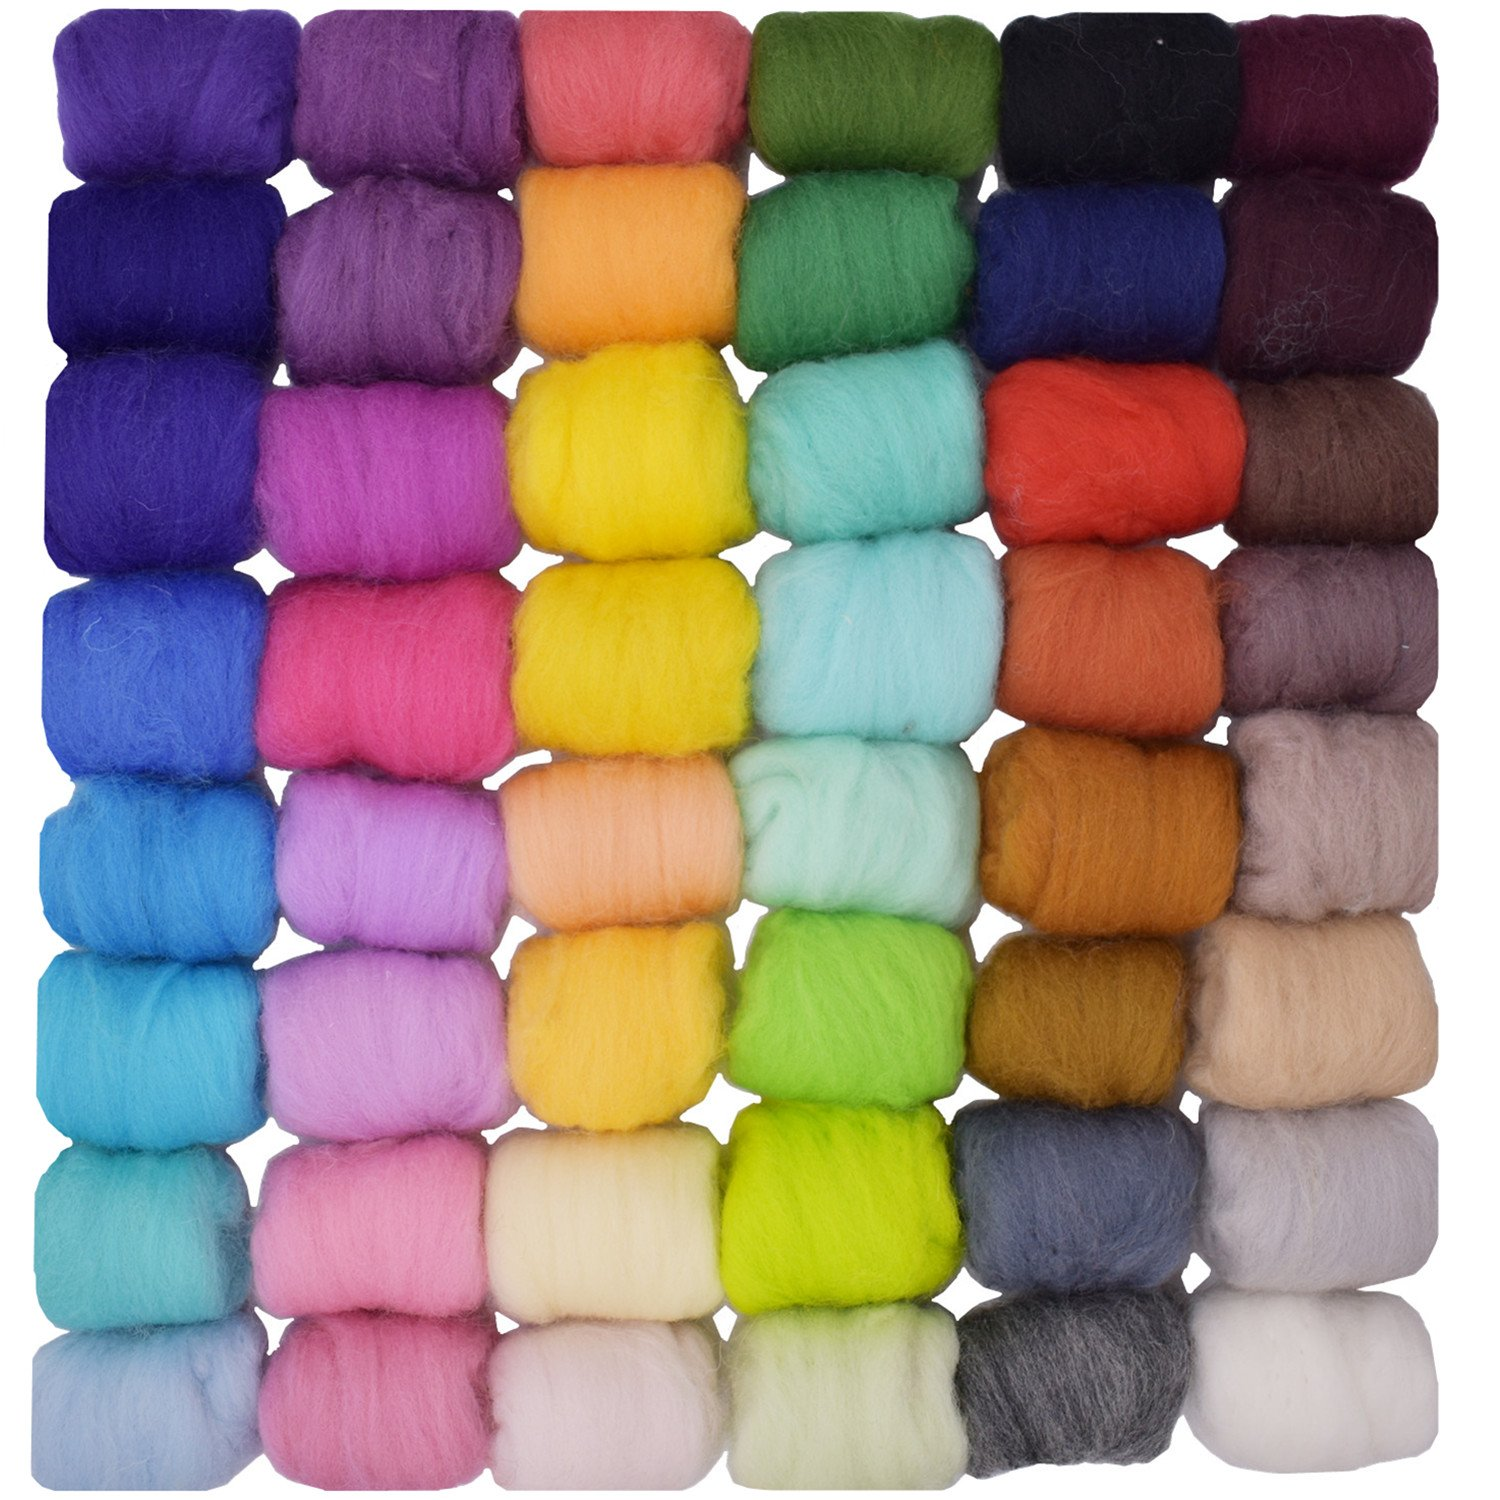 Wool Roving Loveself 50 Colors 5g/color for Needle Felting Hand Spinning DIY Craft Materials 4336906530